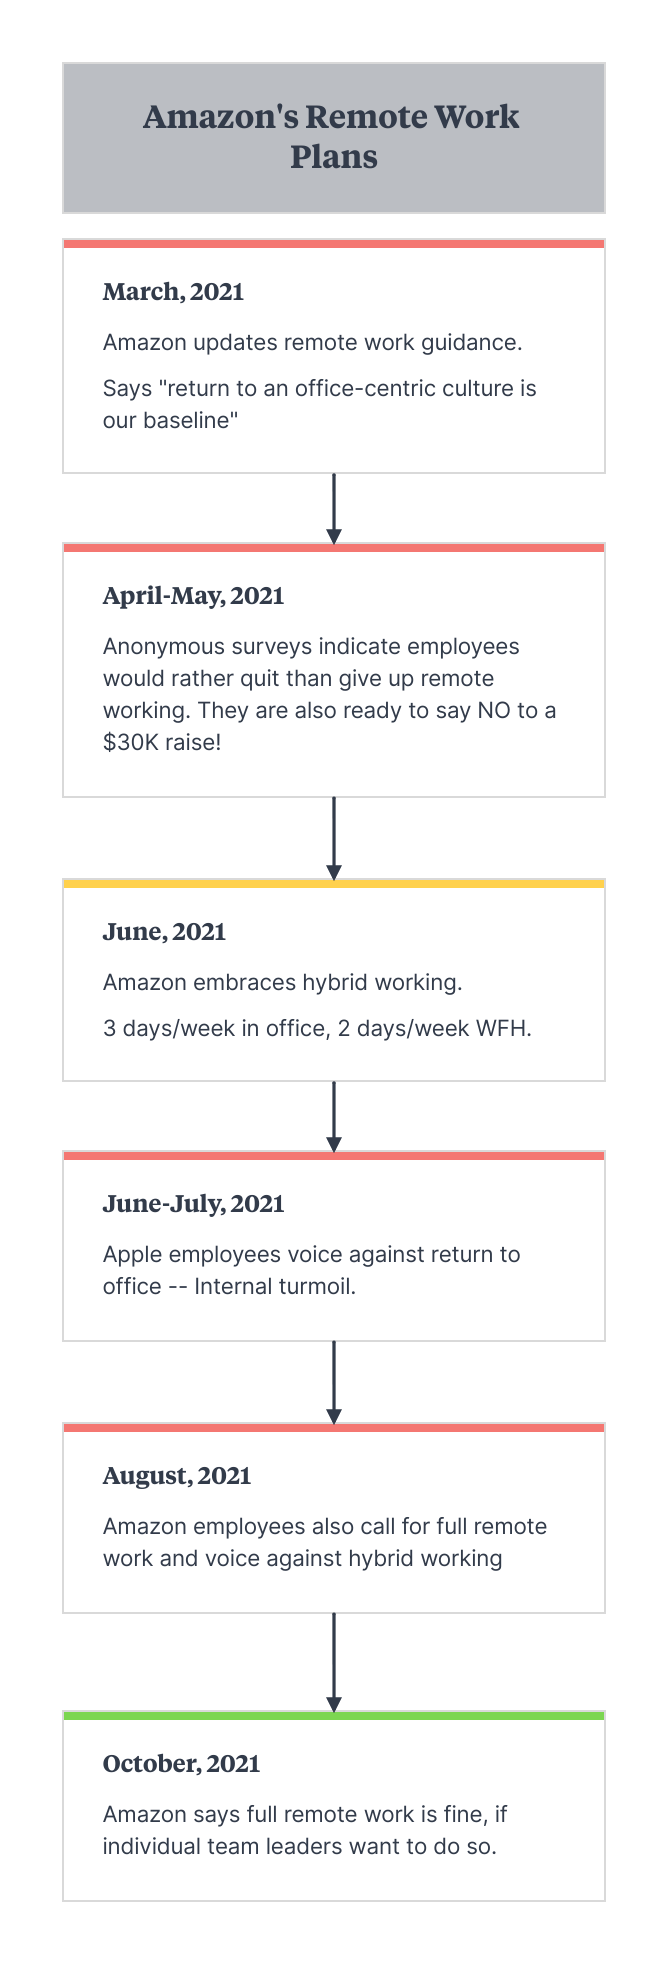 Amazon rethinks return to office, says remote working is fine!